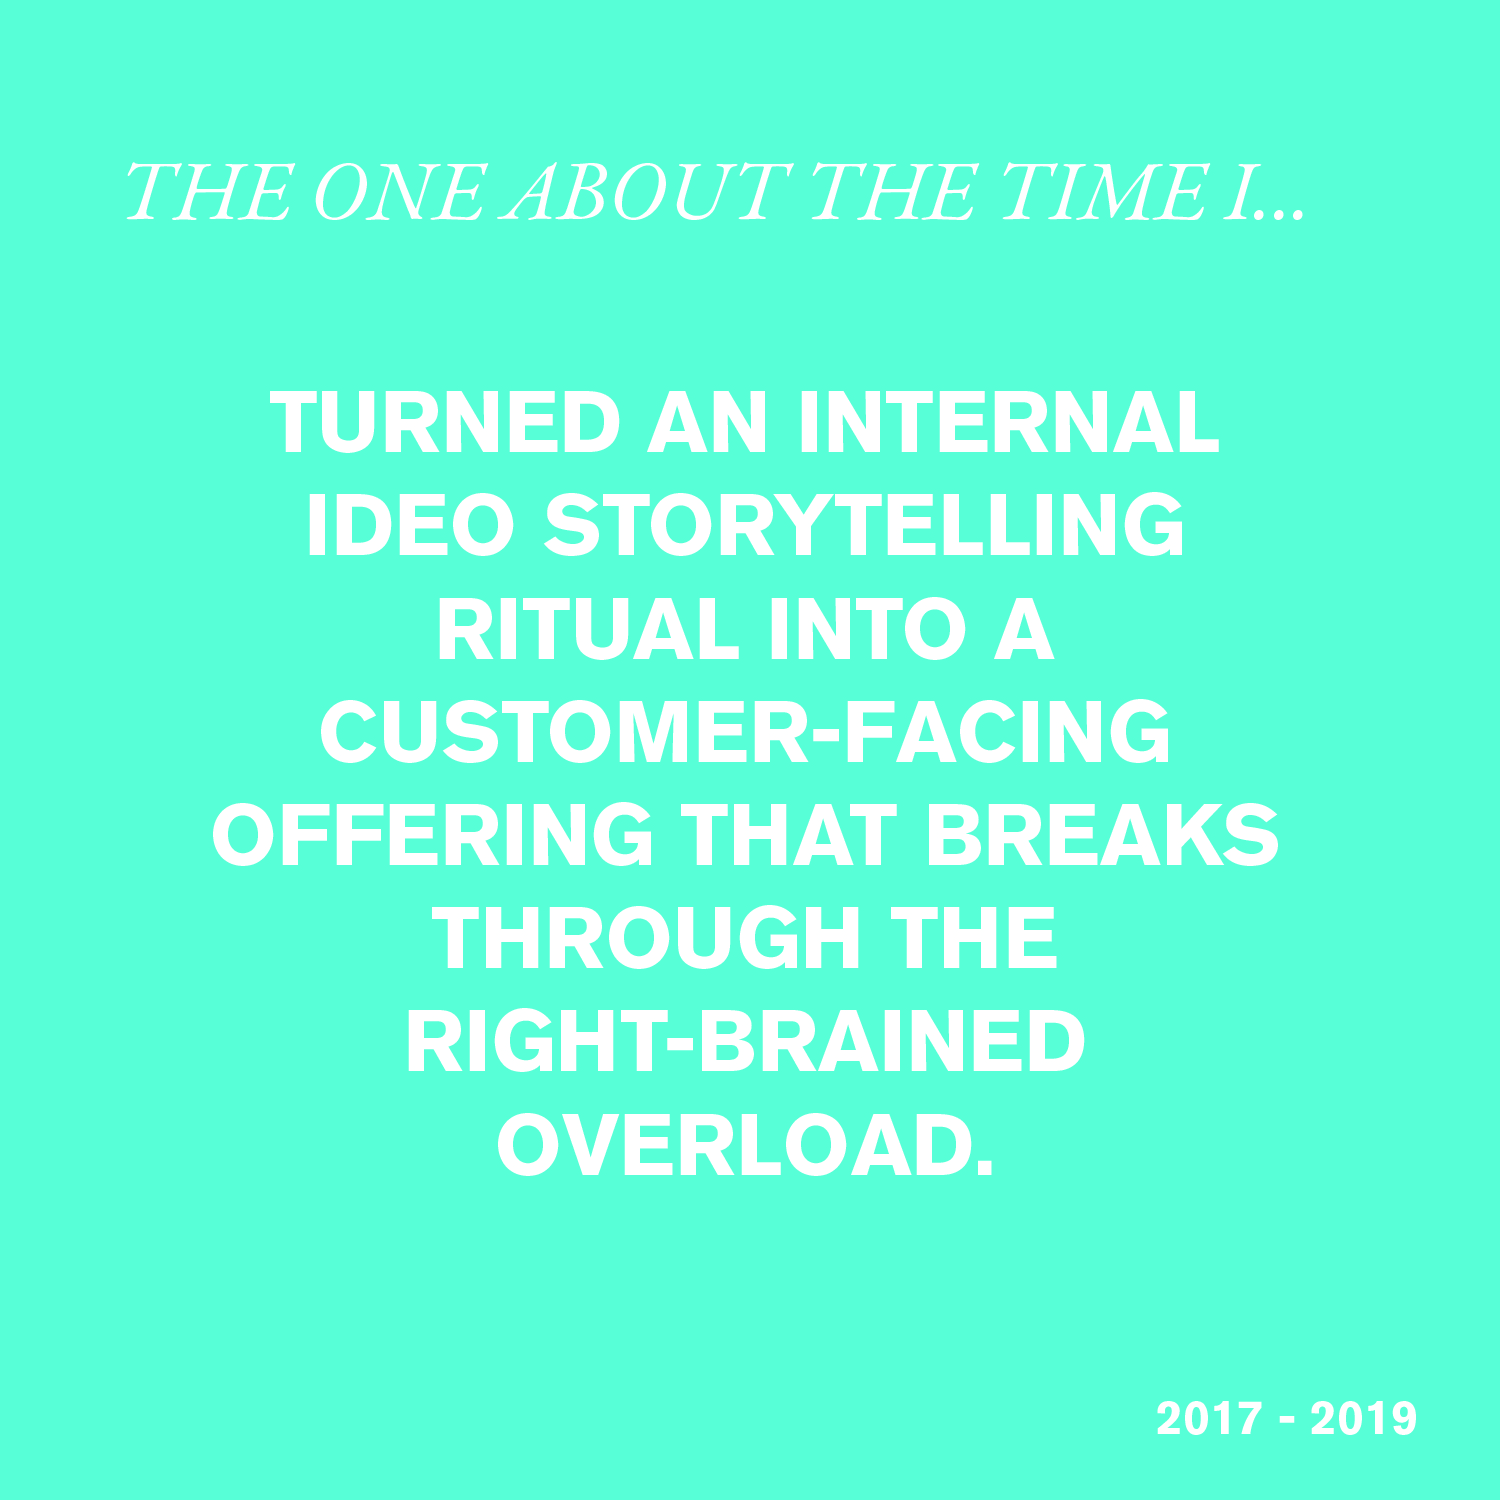 IDEO Stories